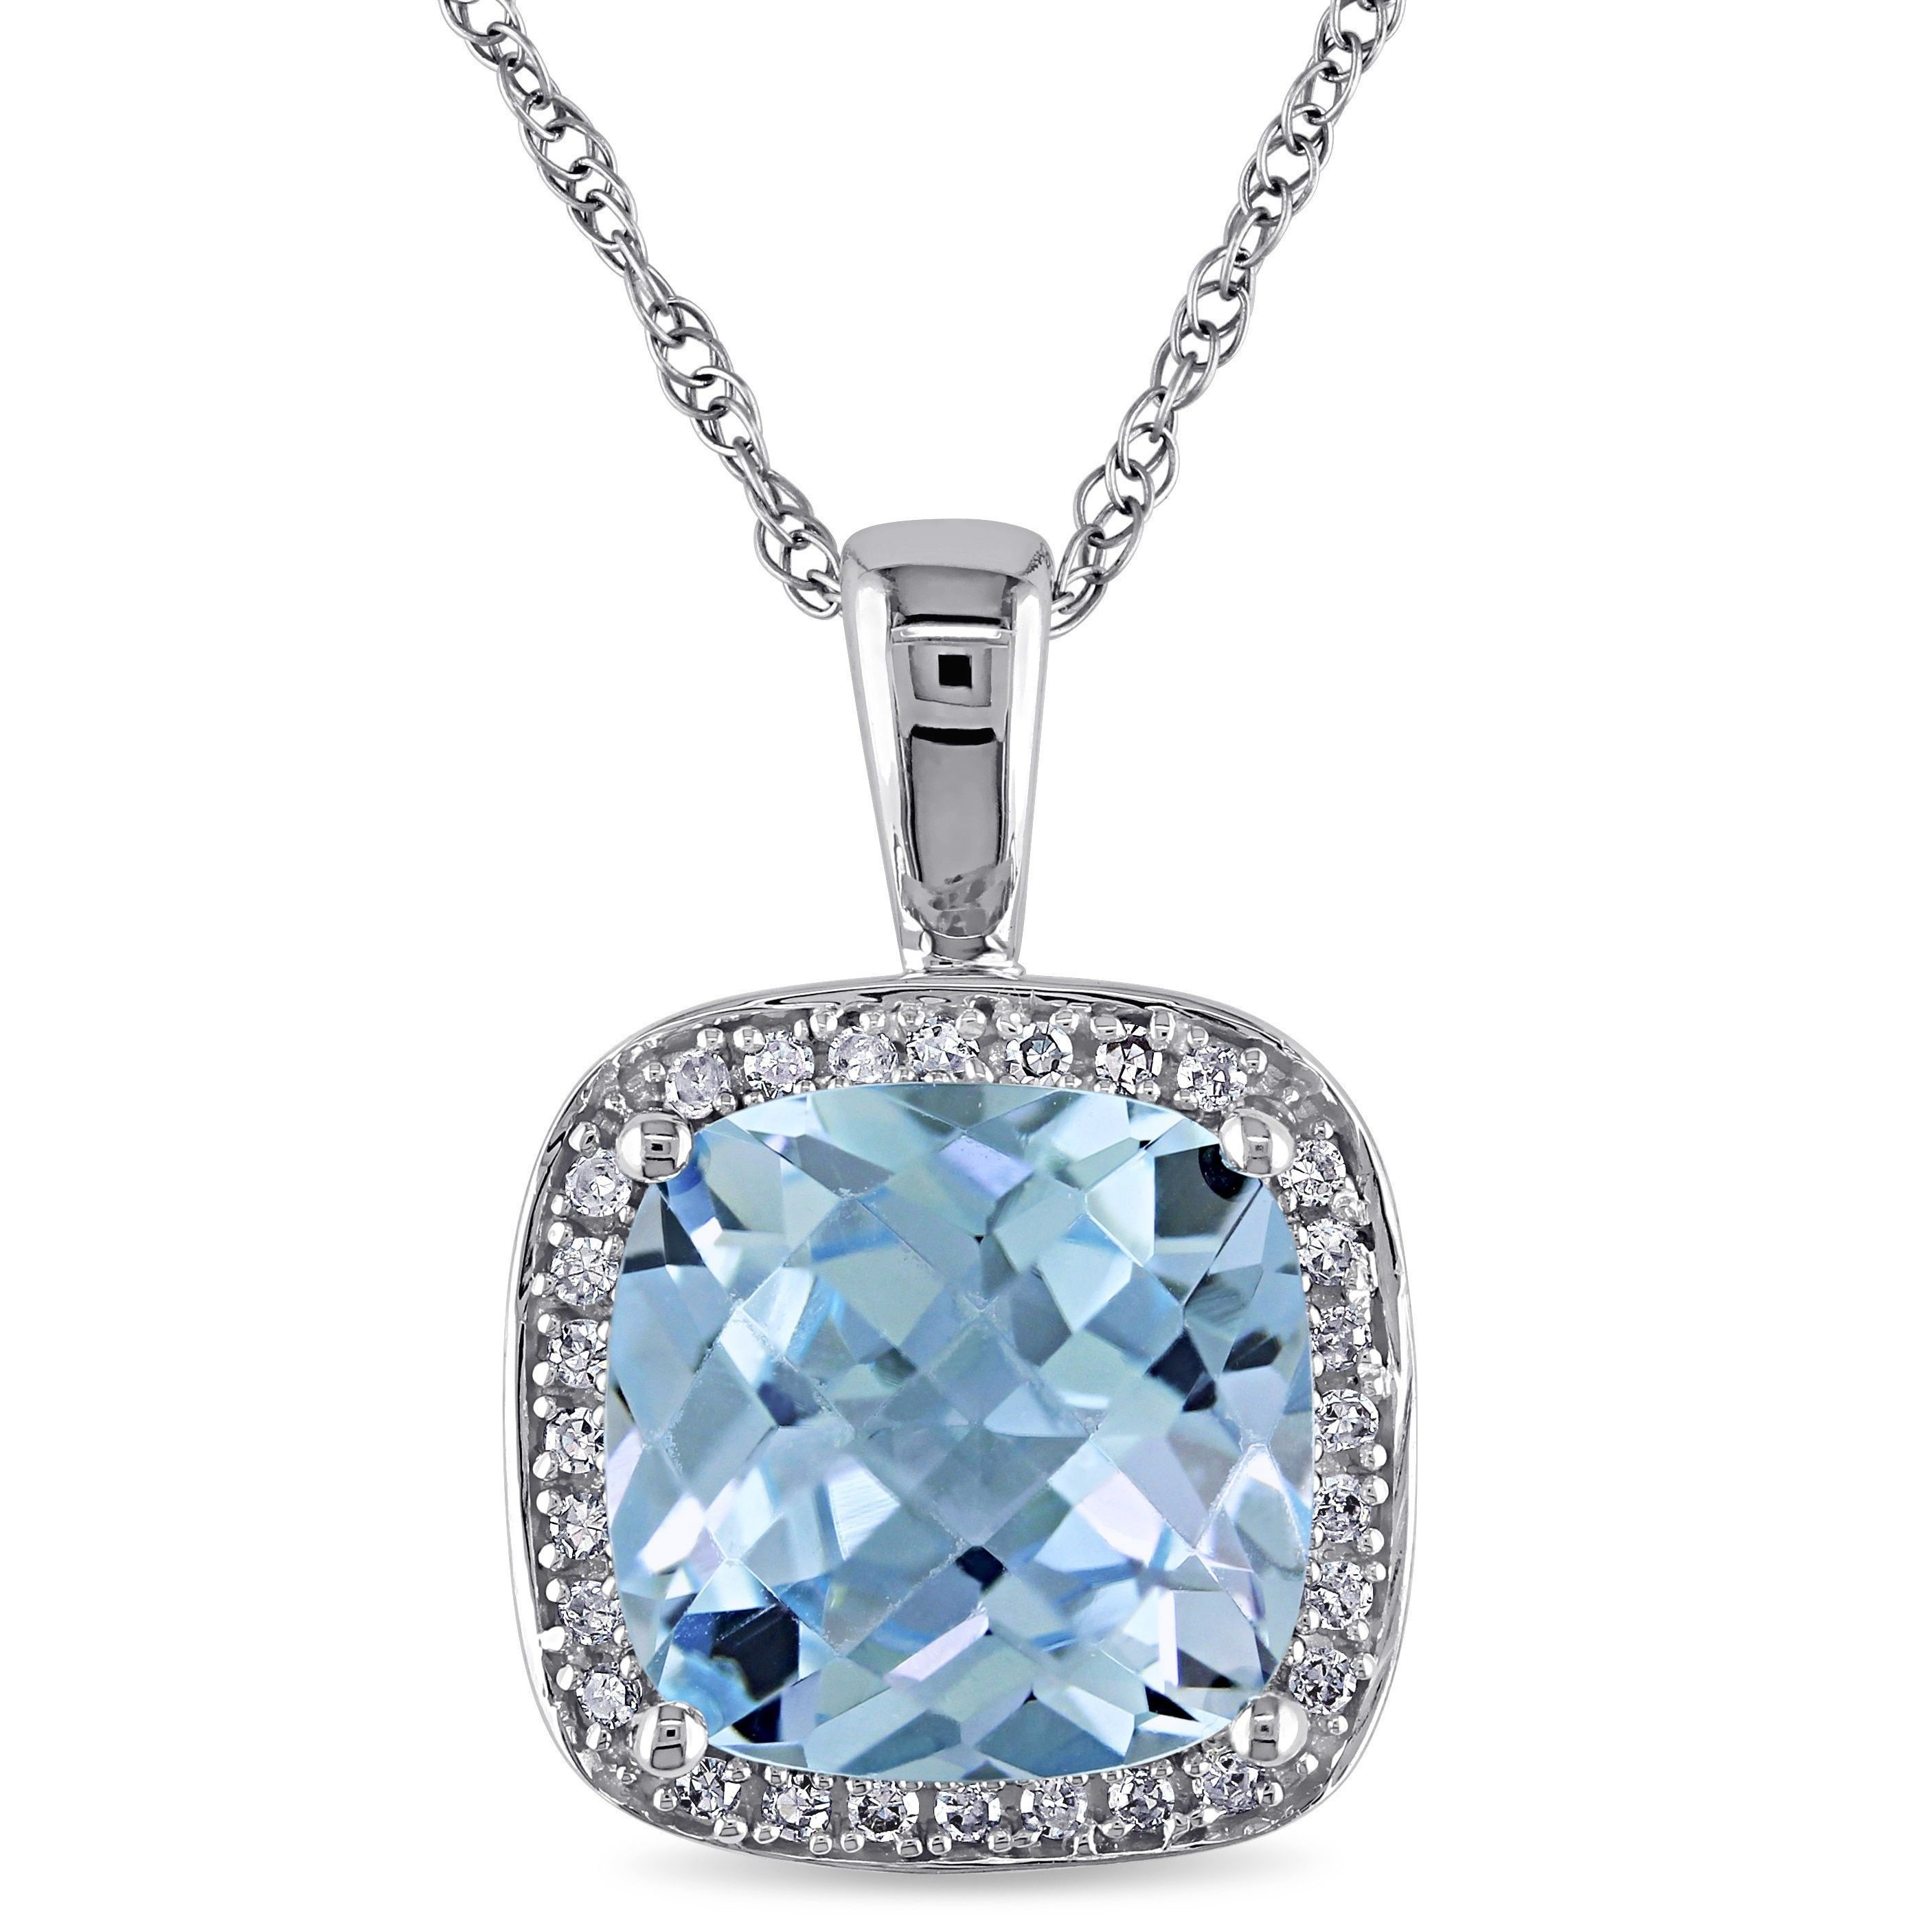 in solitaire necklace chain pendant white gold diamond bezel set rolo davies on a edwards product